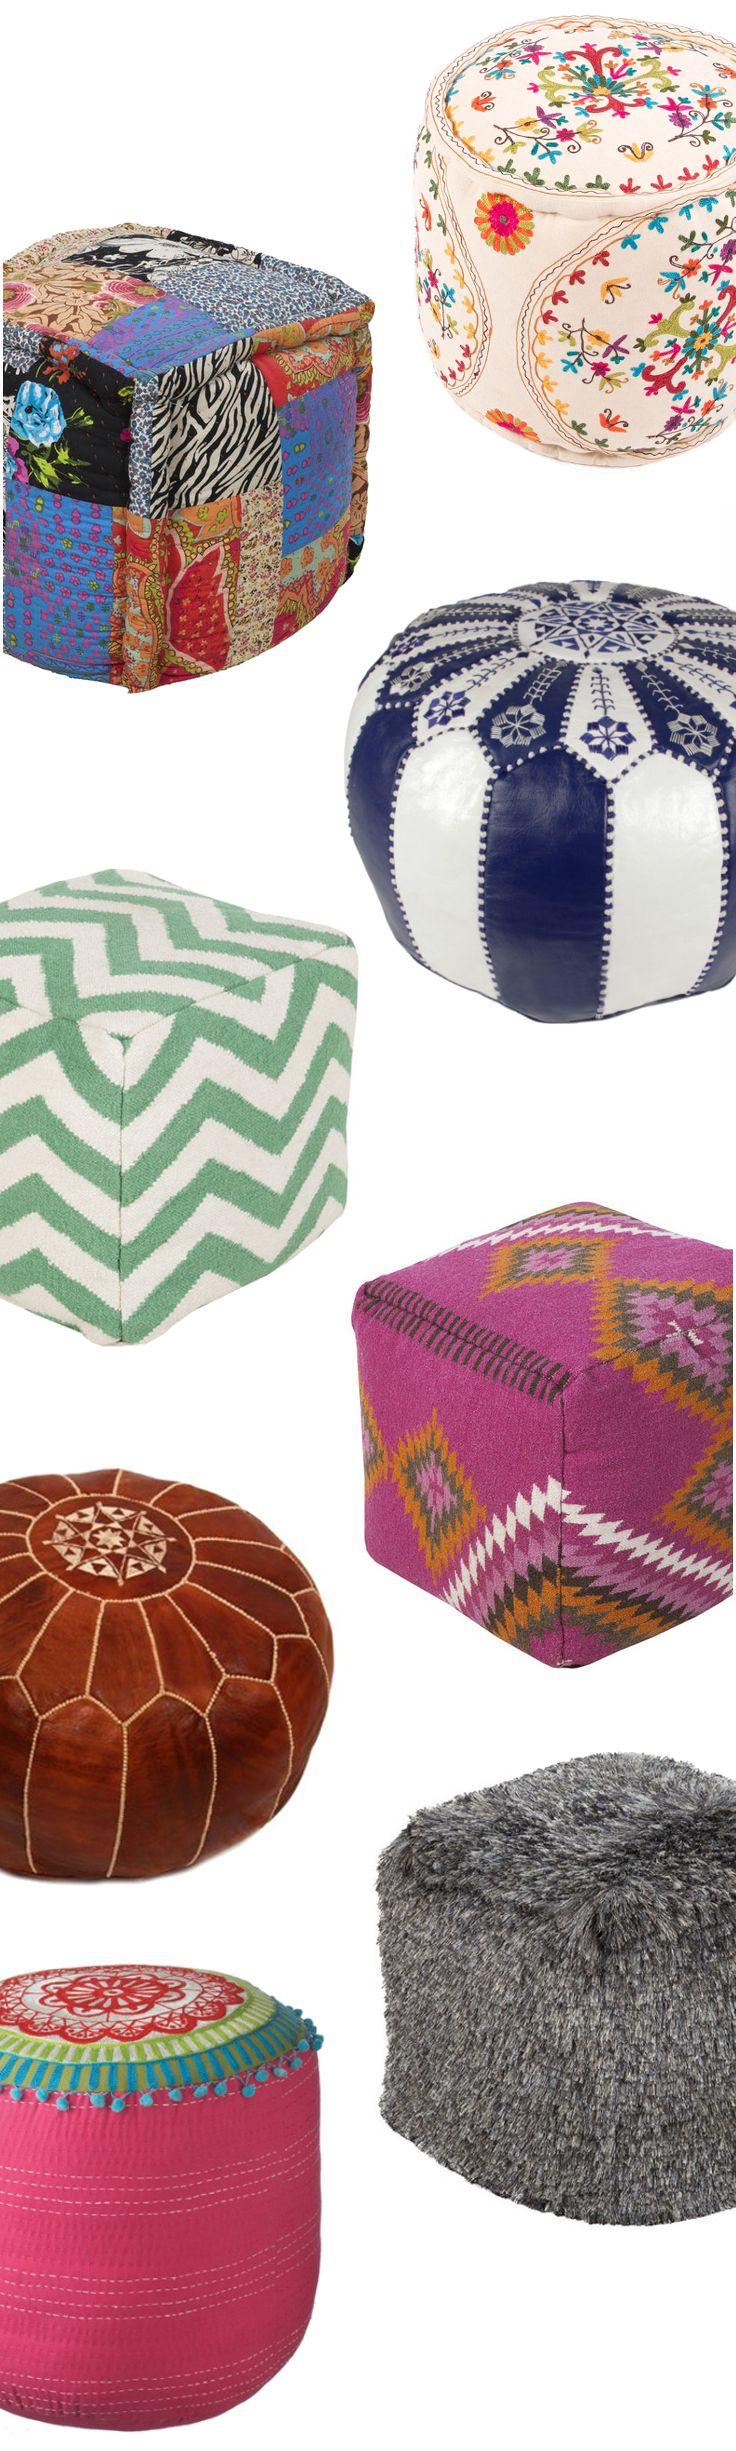 Cushions & Poufs | Up to 60% Off at dotandbo.com